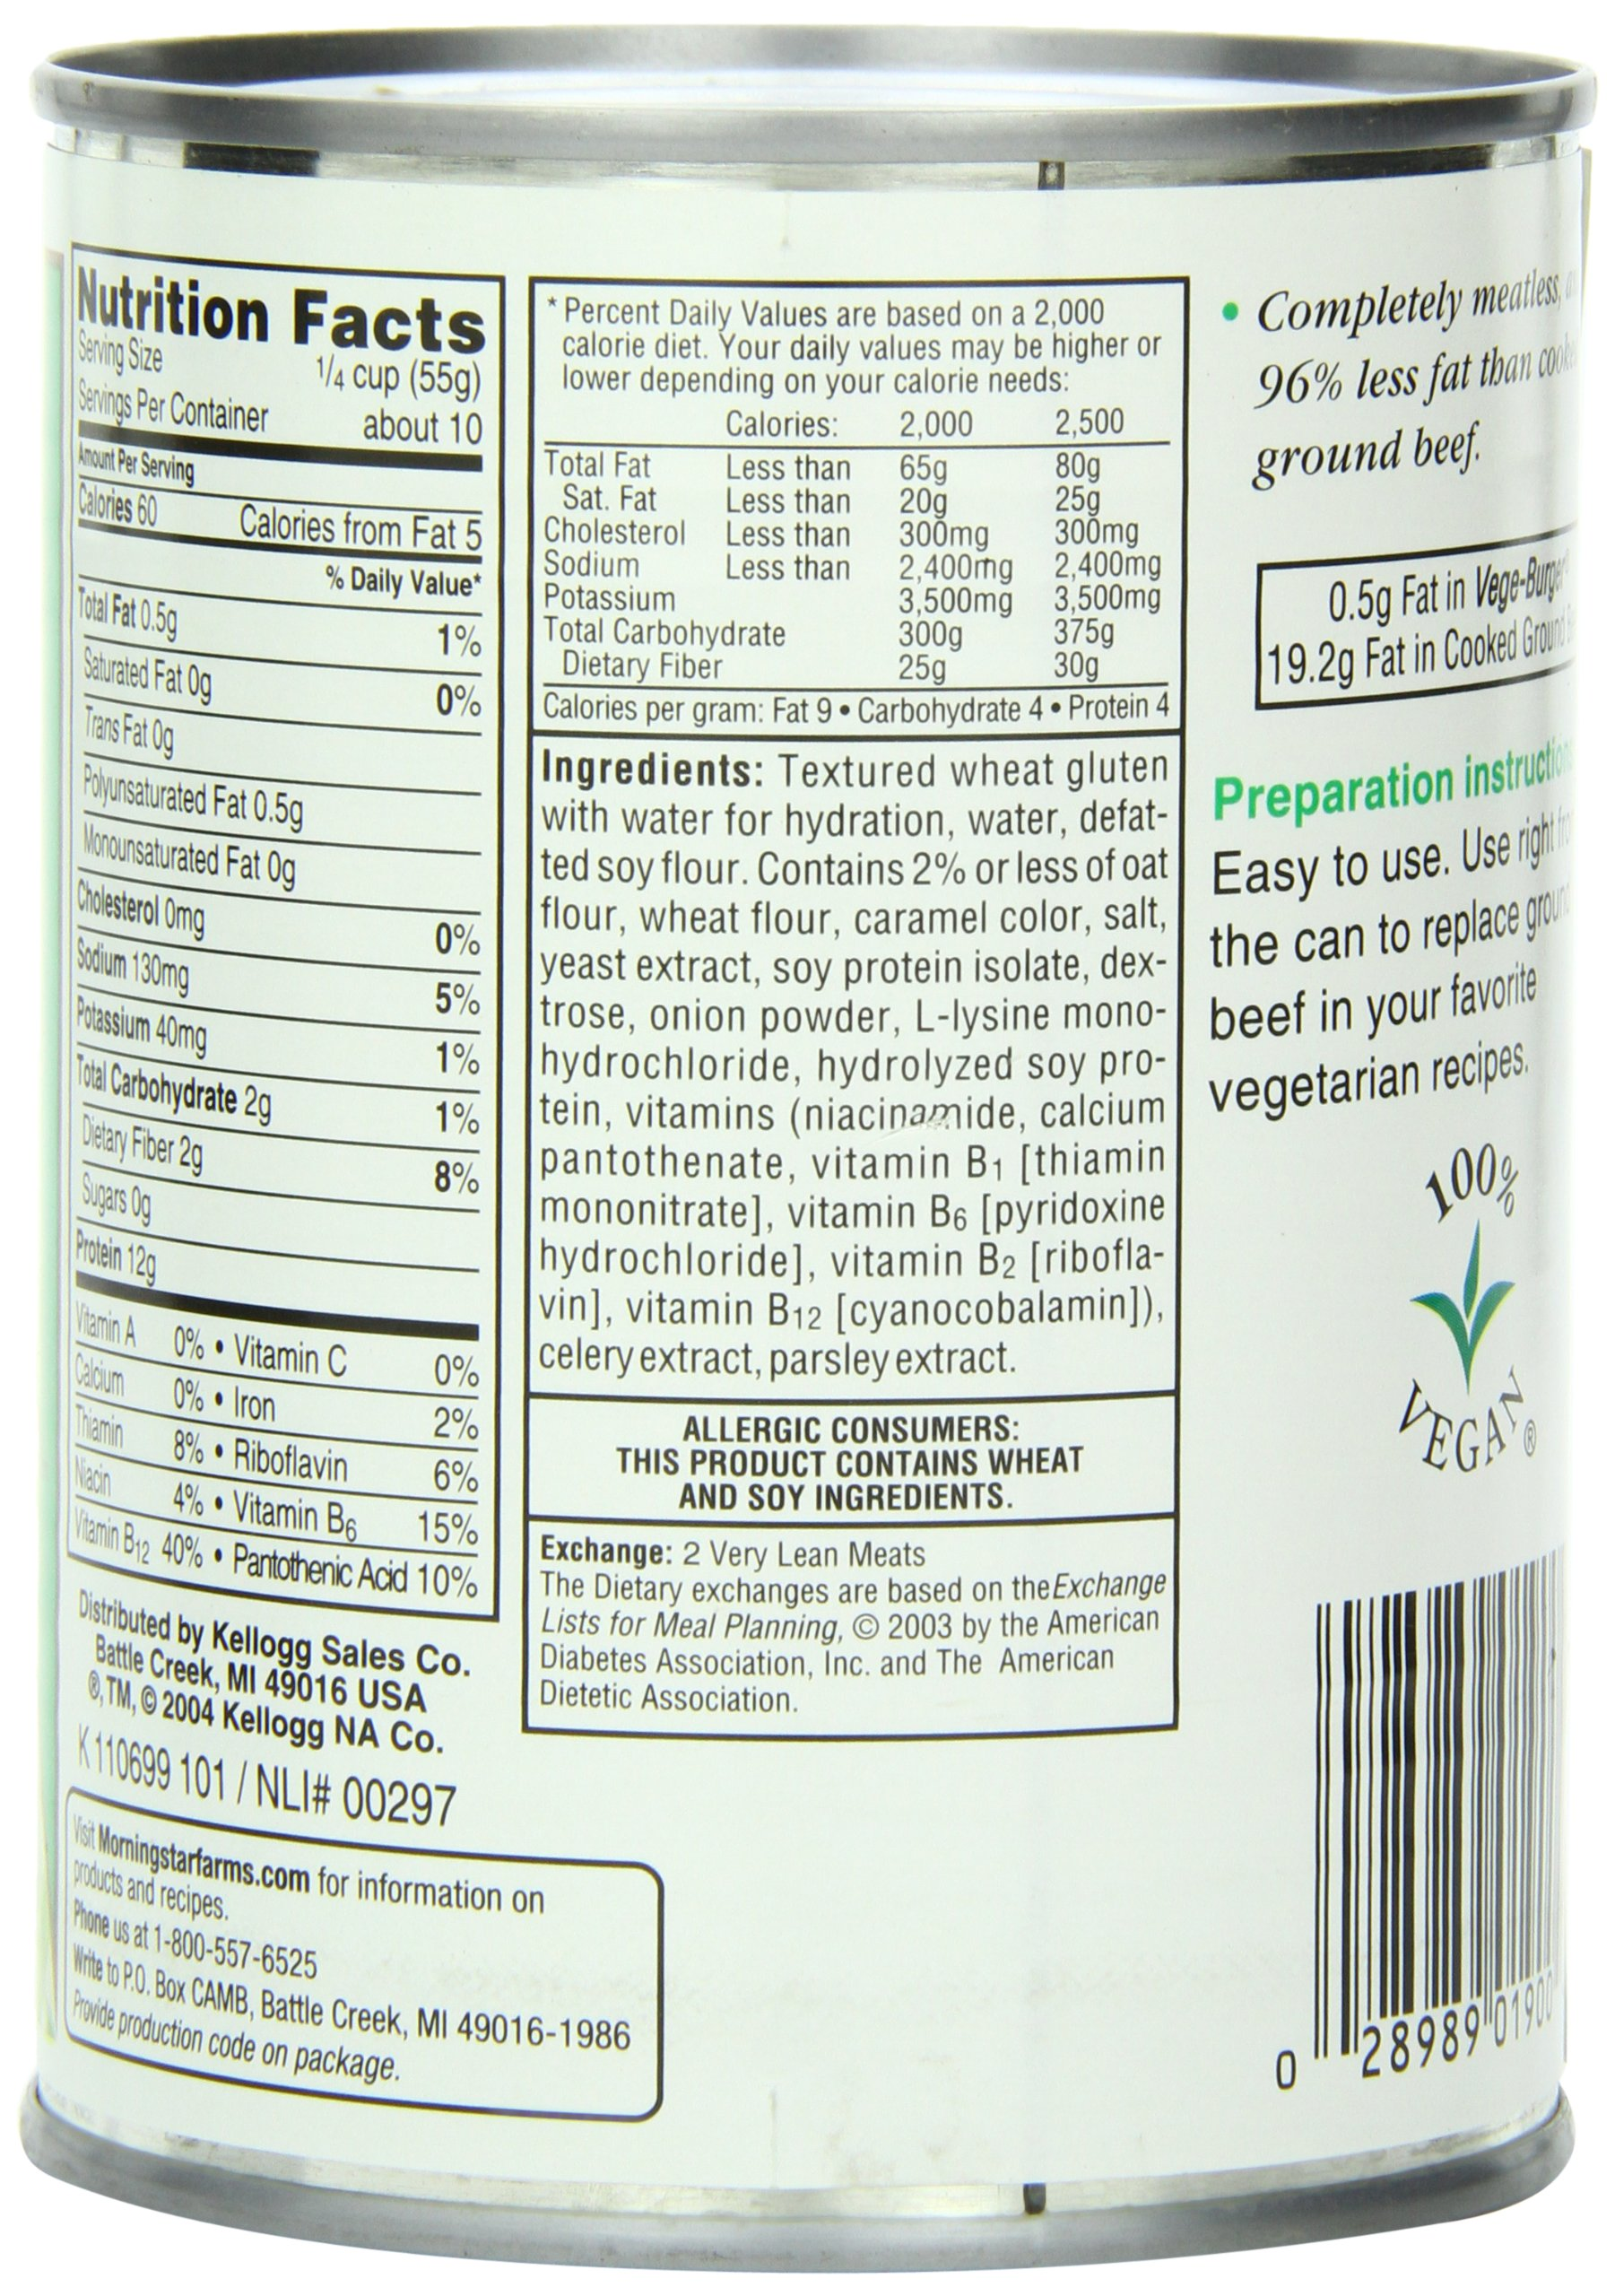 Loma Linda Vege-Burger, 19-Ounce Cans (Pack of 12) by Loma Linda (Image #5)